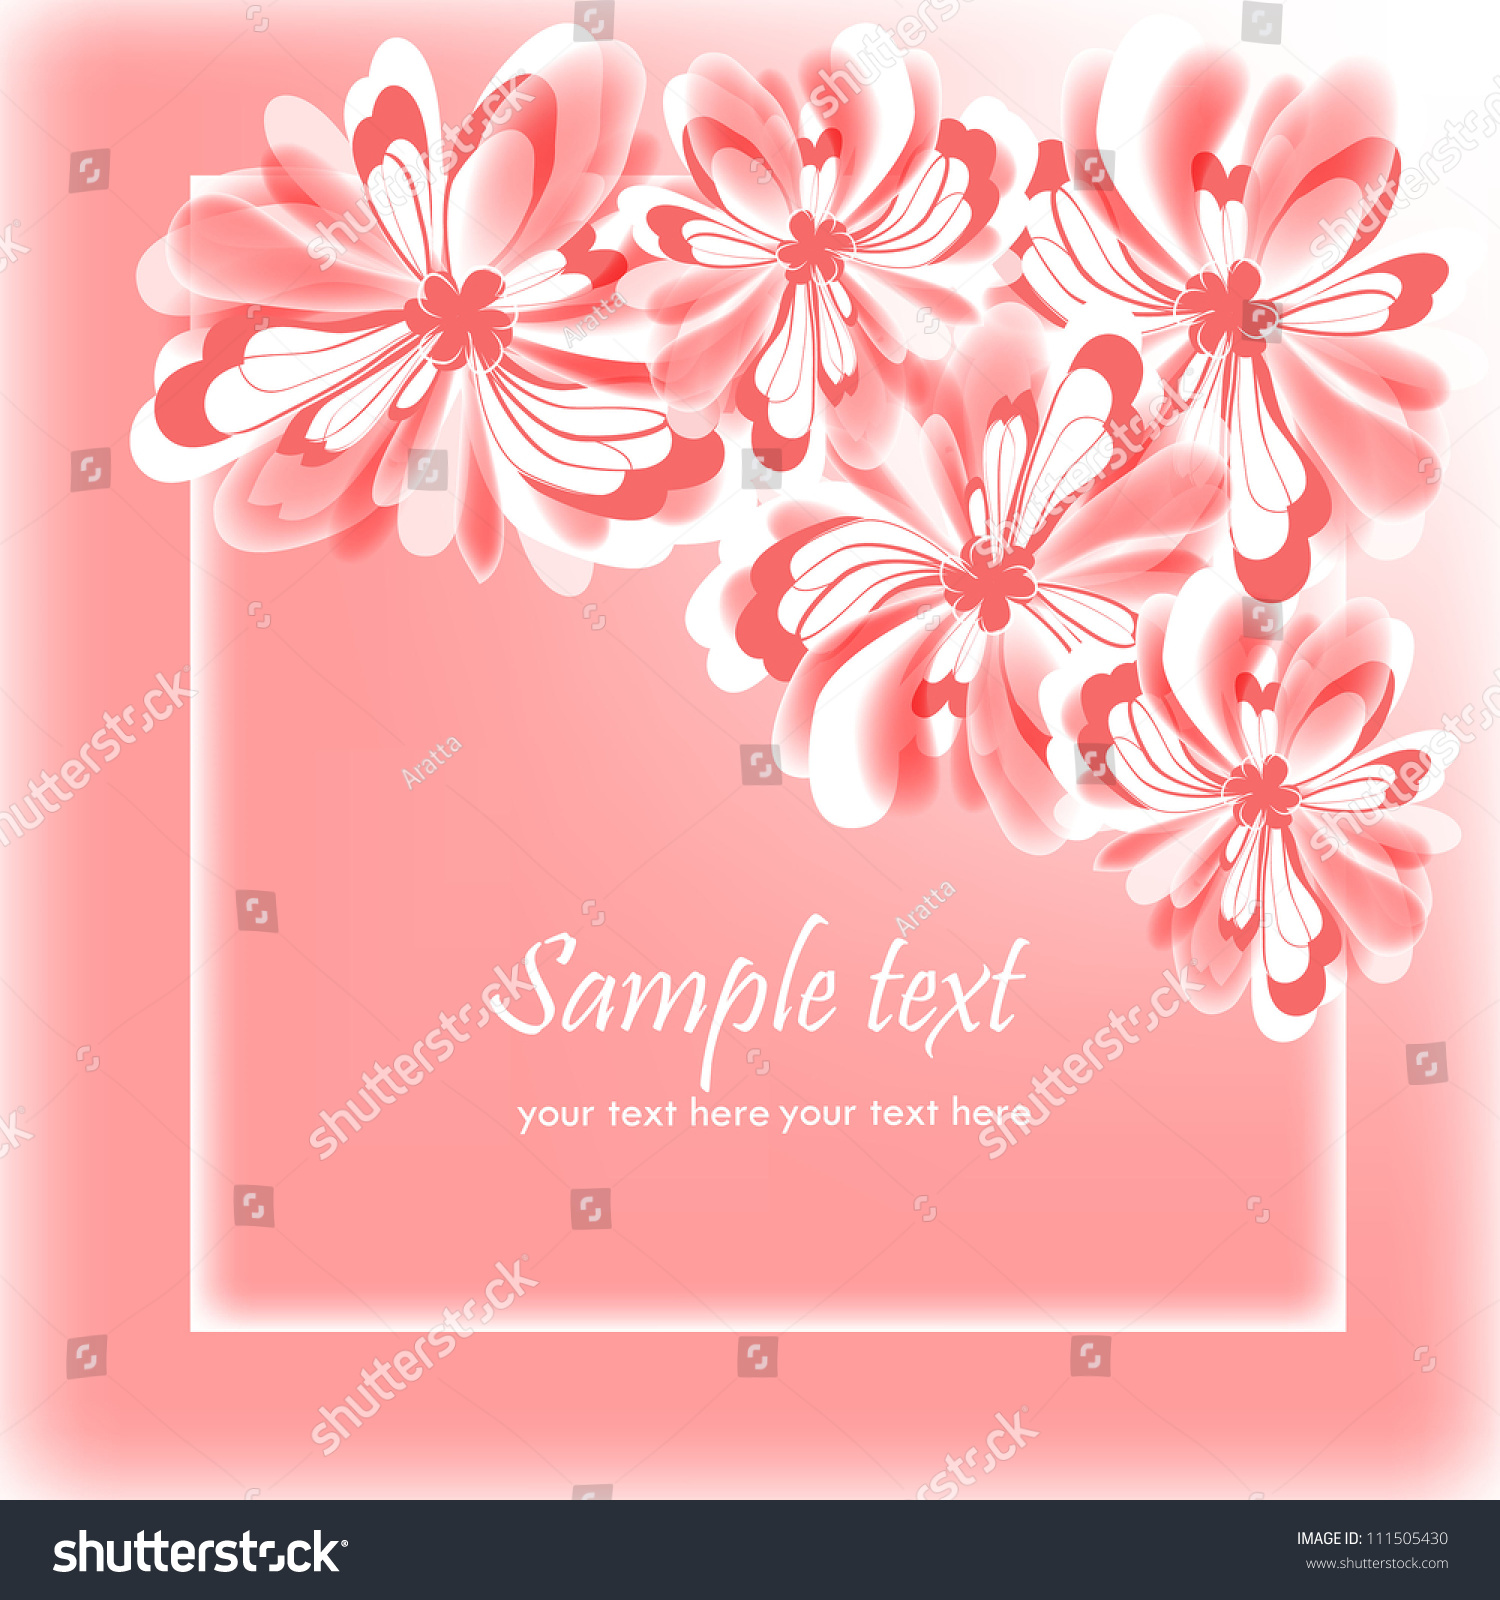 Invitation Greeting Card Abstract Floral Background Stock Vector